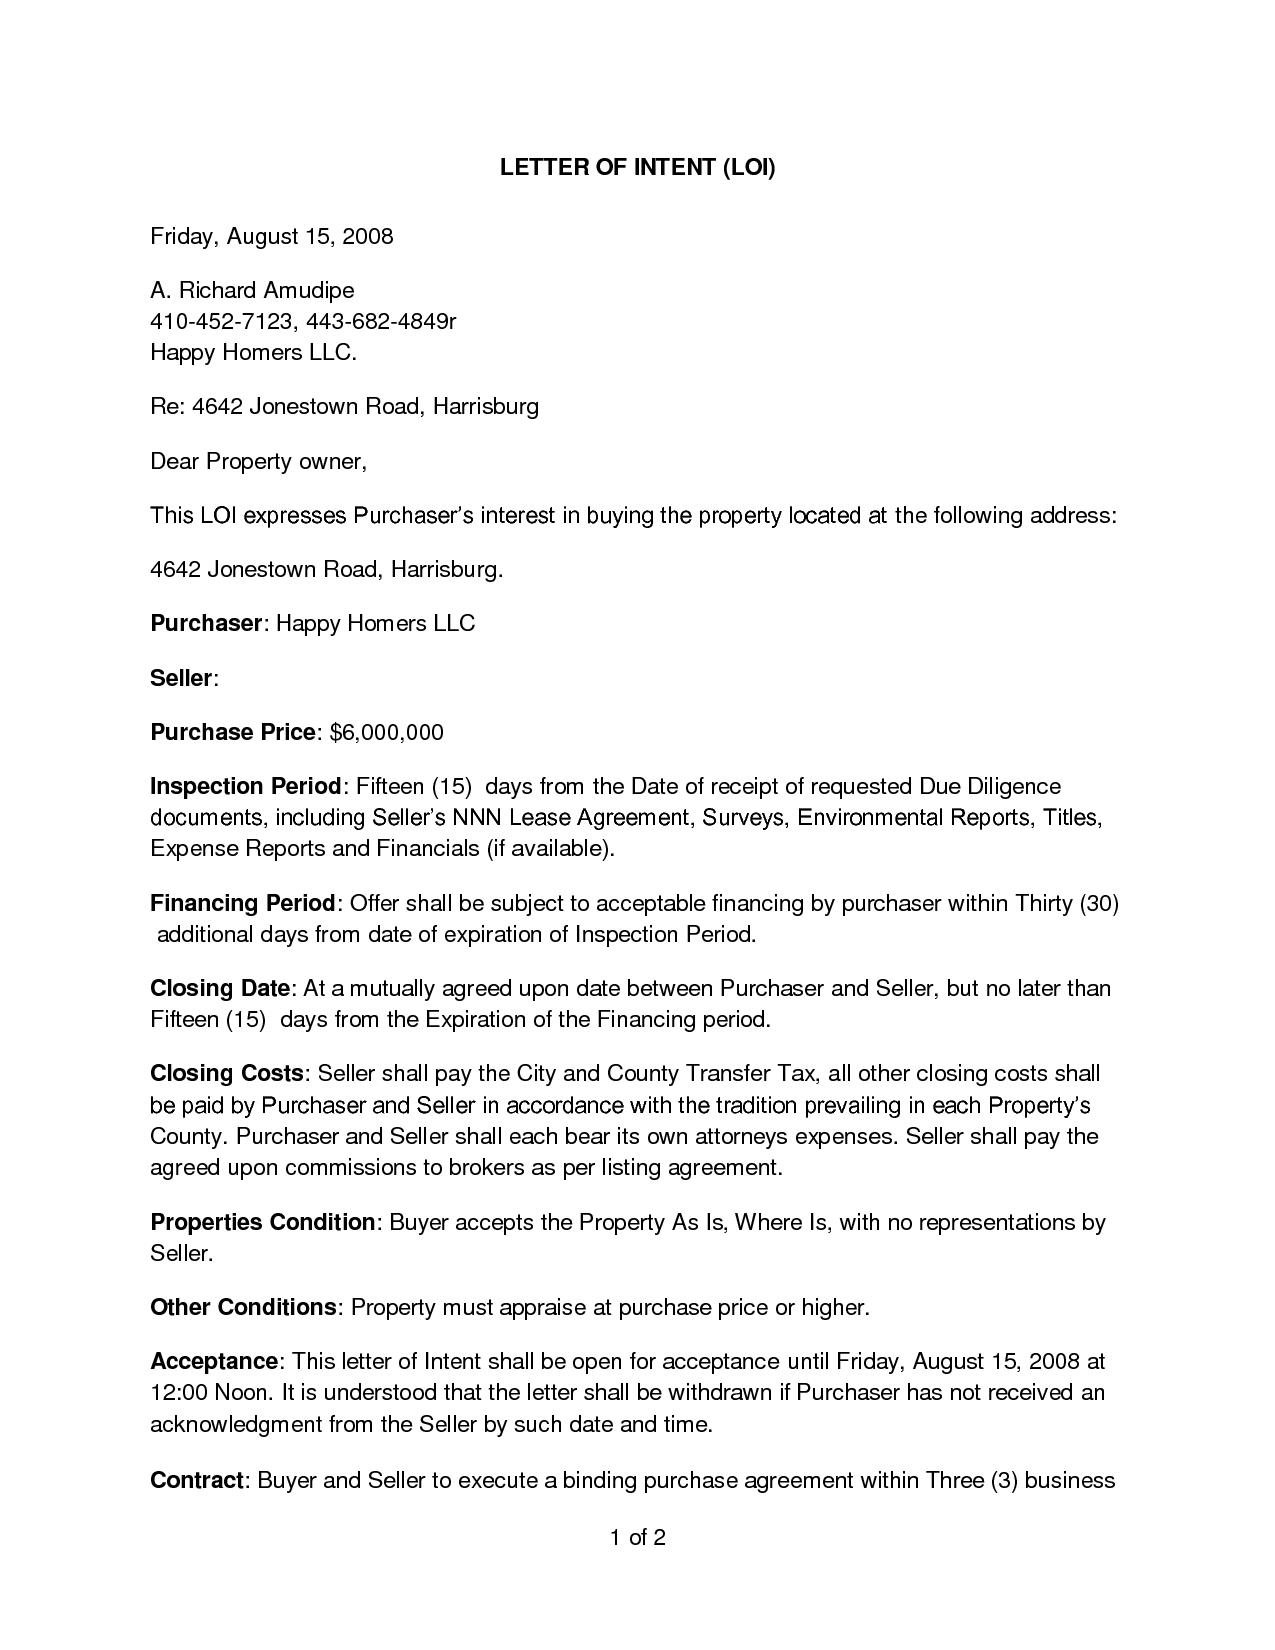 Letter Of Intent to Purchase Real Estate Template - Simple Letter Intent to Purchase Property High Best S